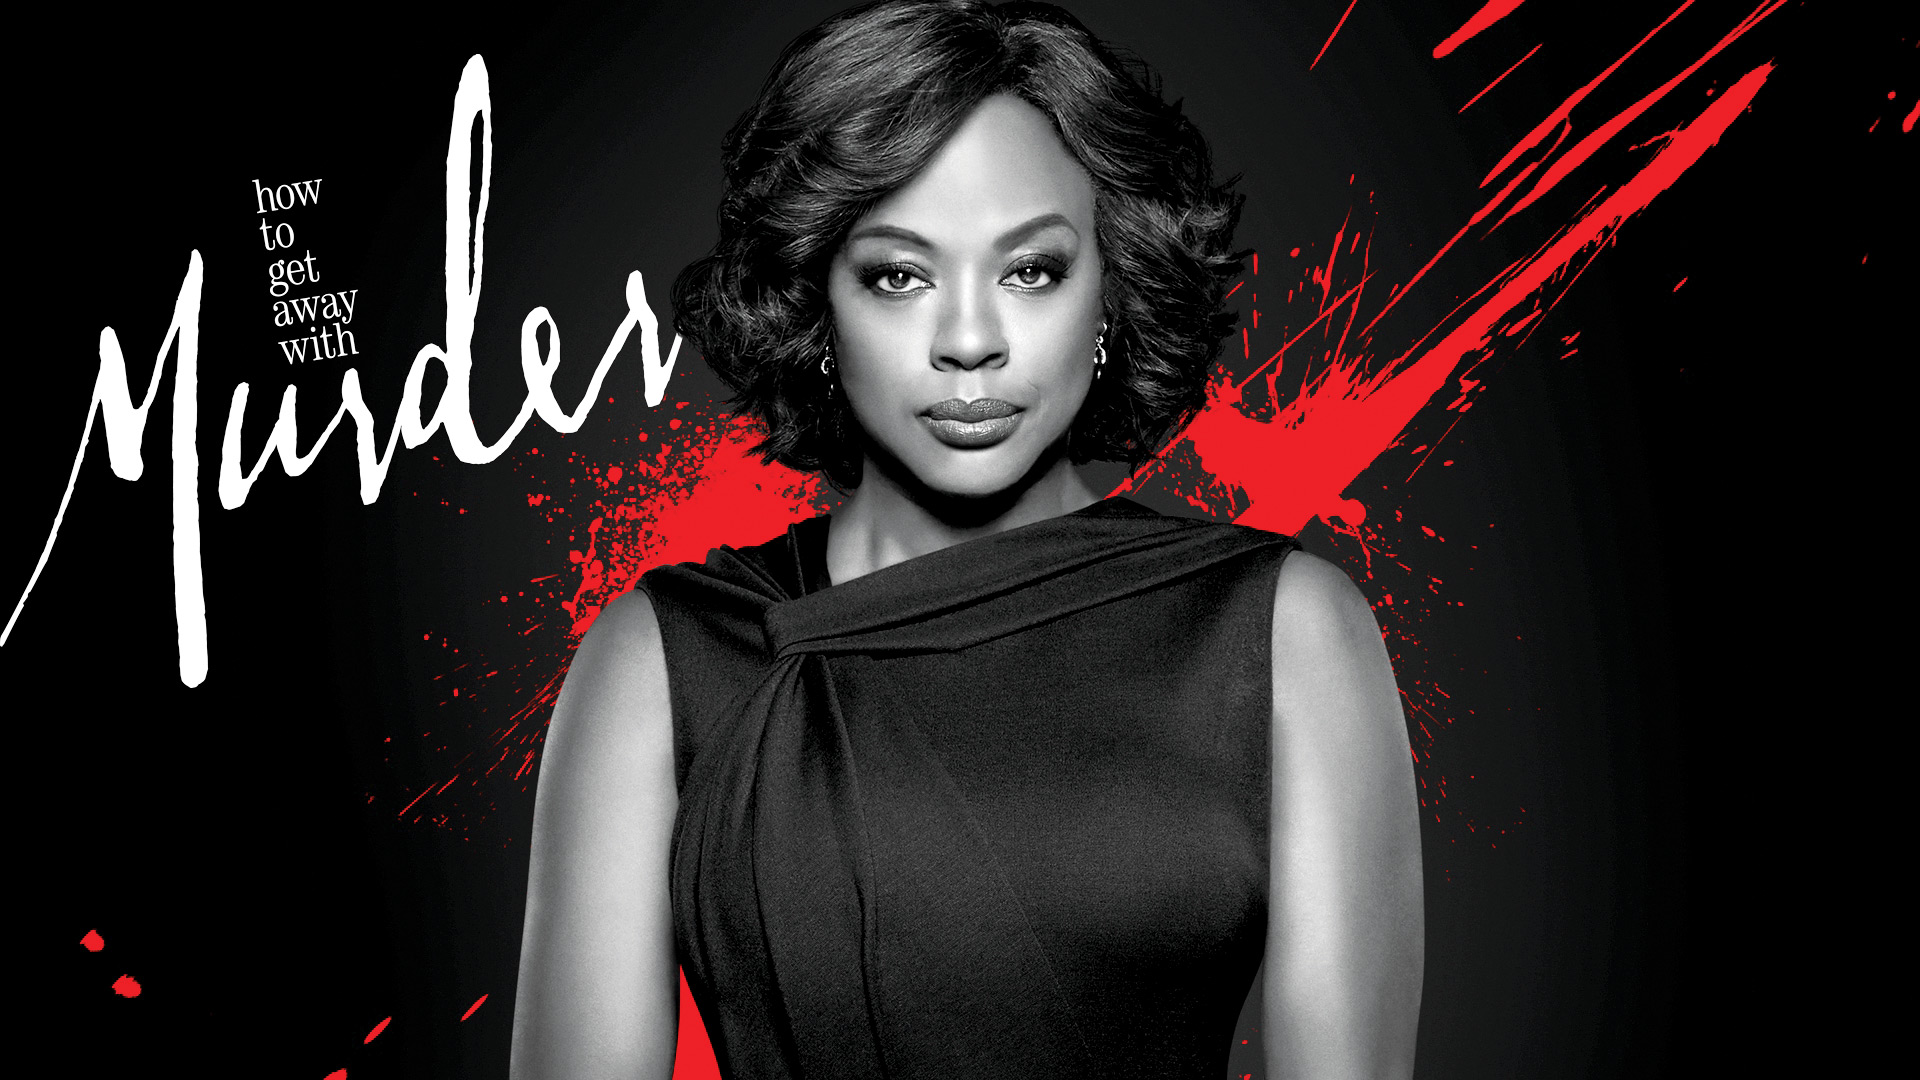 gala screening abc presents how to get away with murder